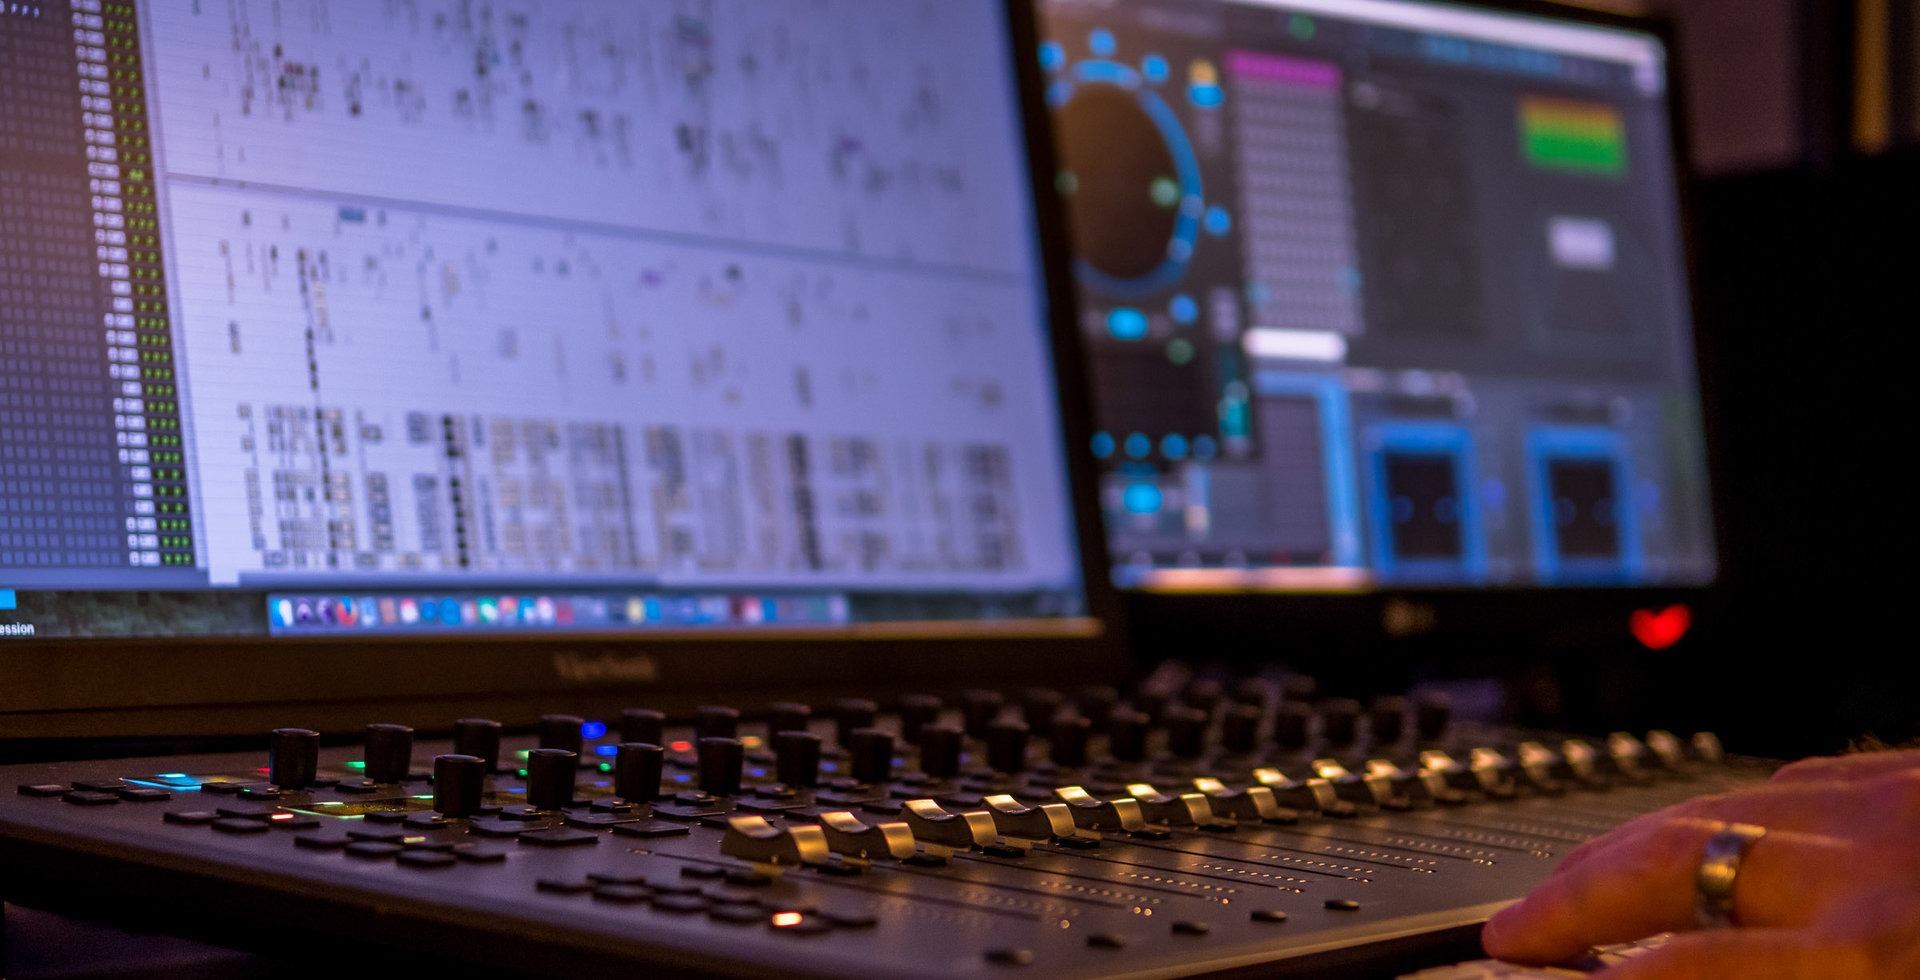 While individual adjustments of sound might be minor, collectively they give video a whole different feeling.